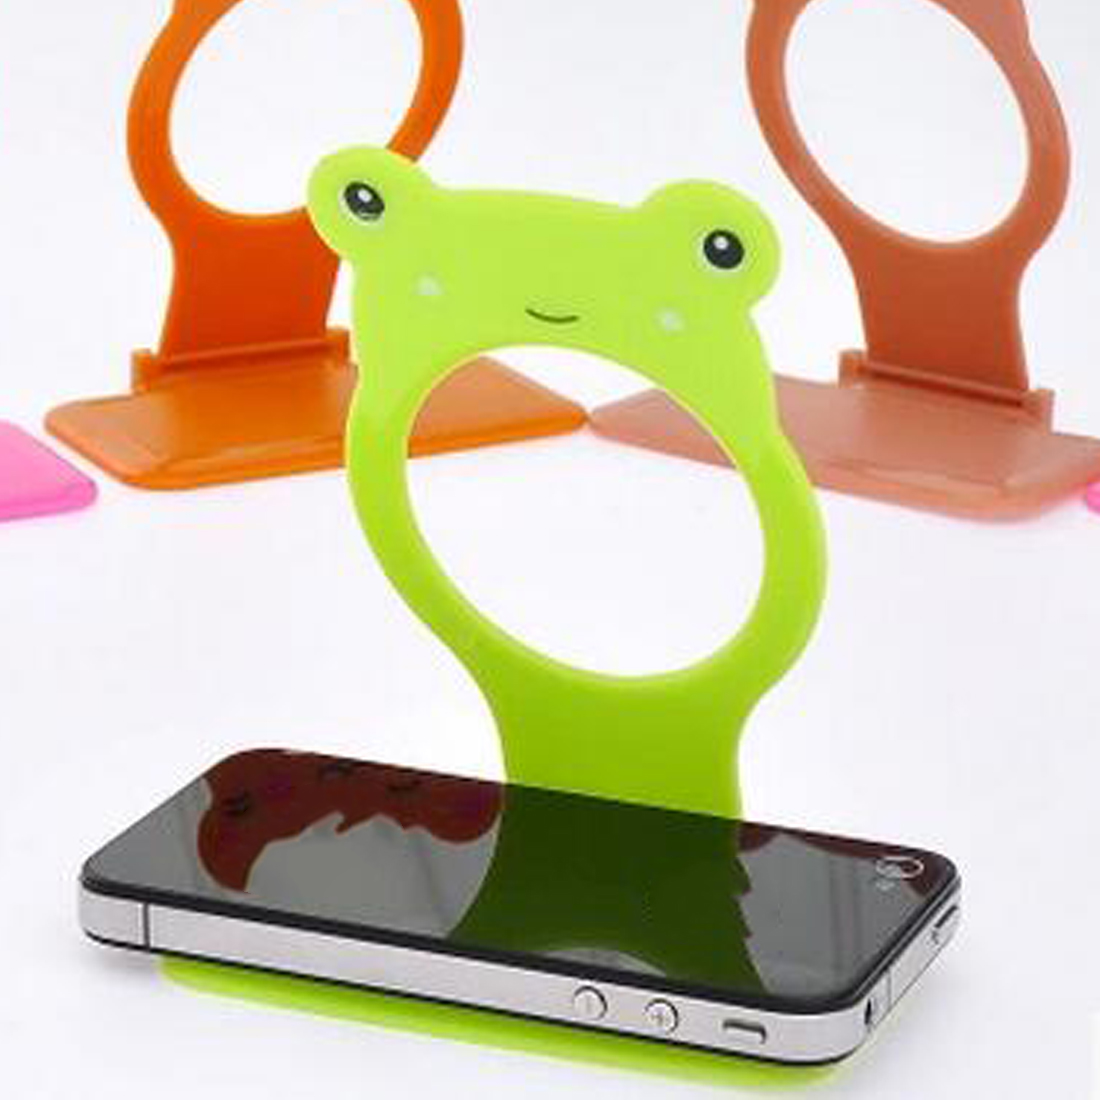 1Pc Cell Phone Wall Charger Hanger Cradle Universal Holder Hanging Stand Rack Shelf Cell Phone Hook Bracket Support